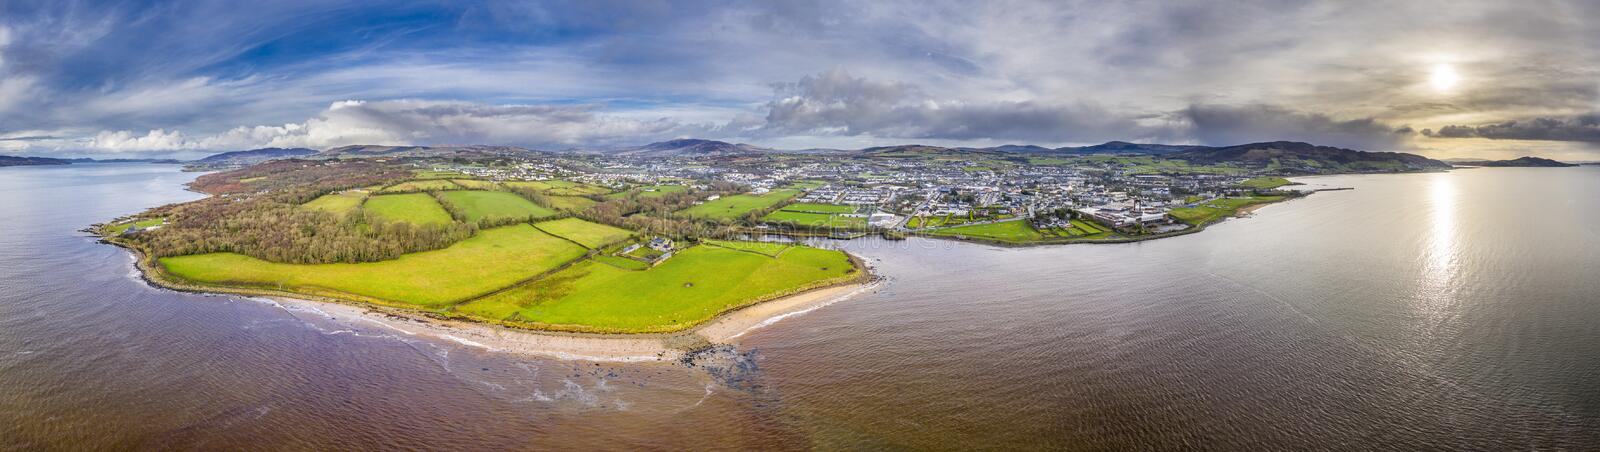 Aerial view of the town Buncrana in County Donegal - Republic of Ireland.  royalty free stock photos